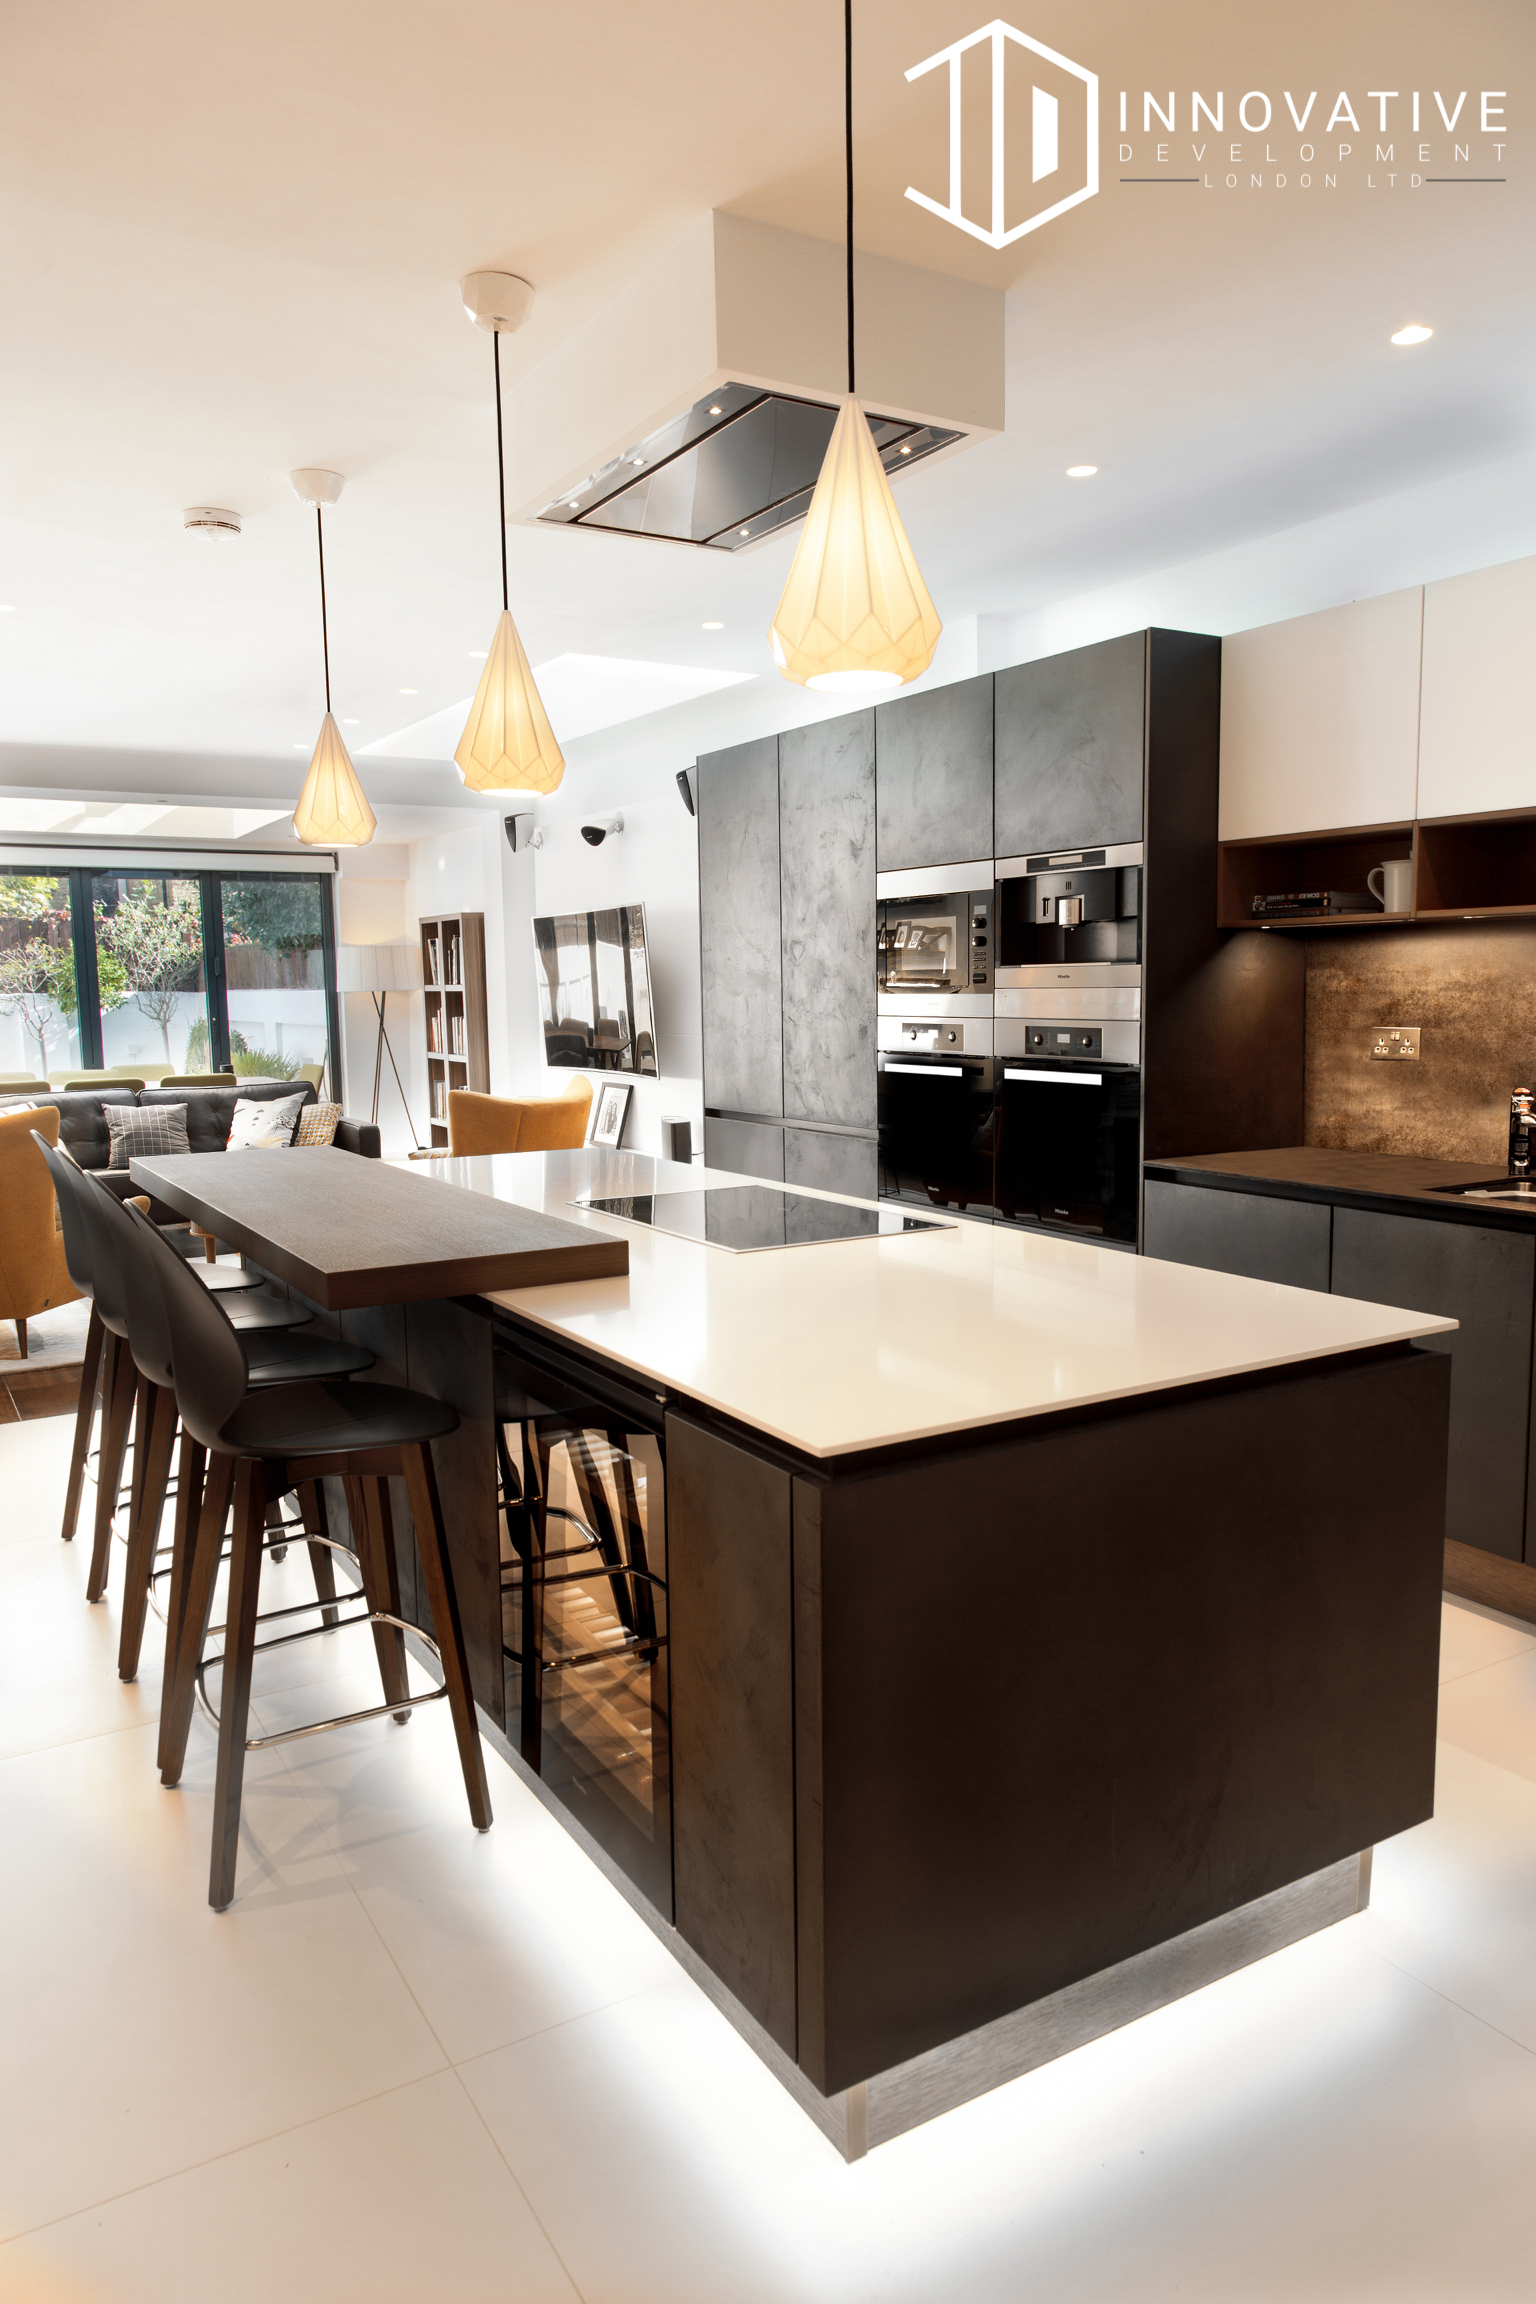 Large modern spacious Kitchen, and Living room area with creamy Interior design for a completed Kitchen Extension in Chiswick